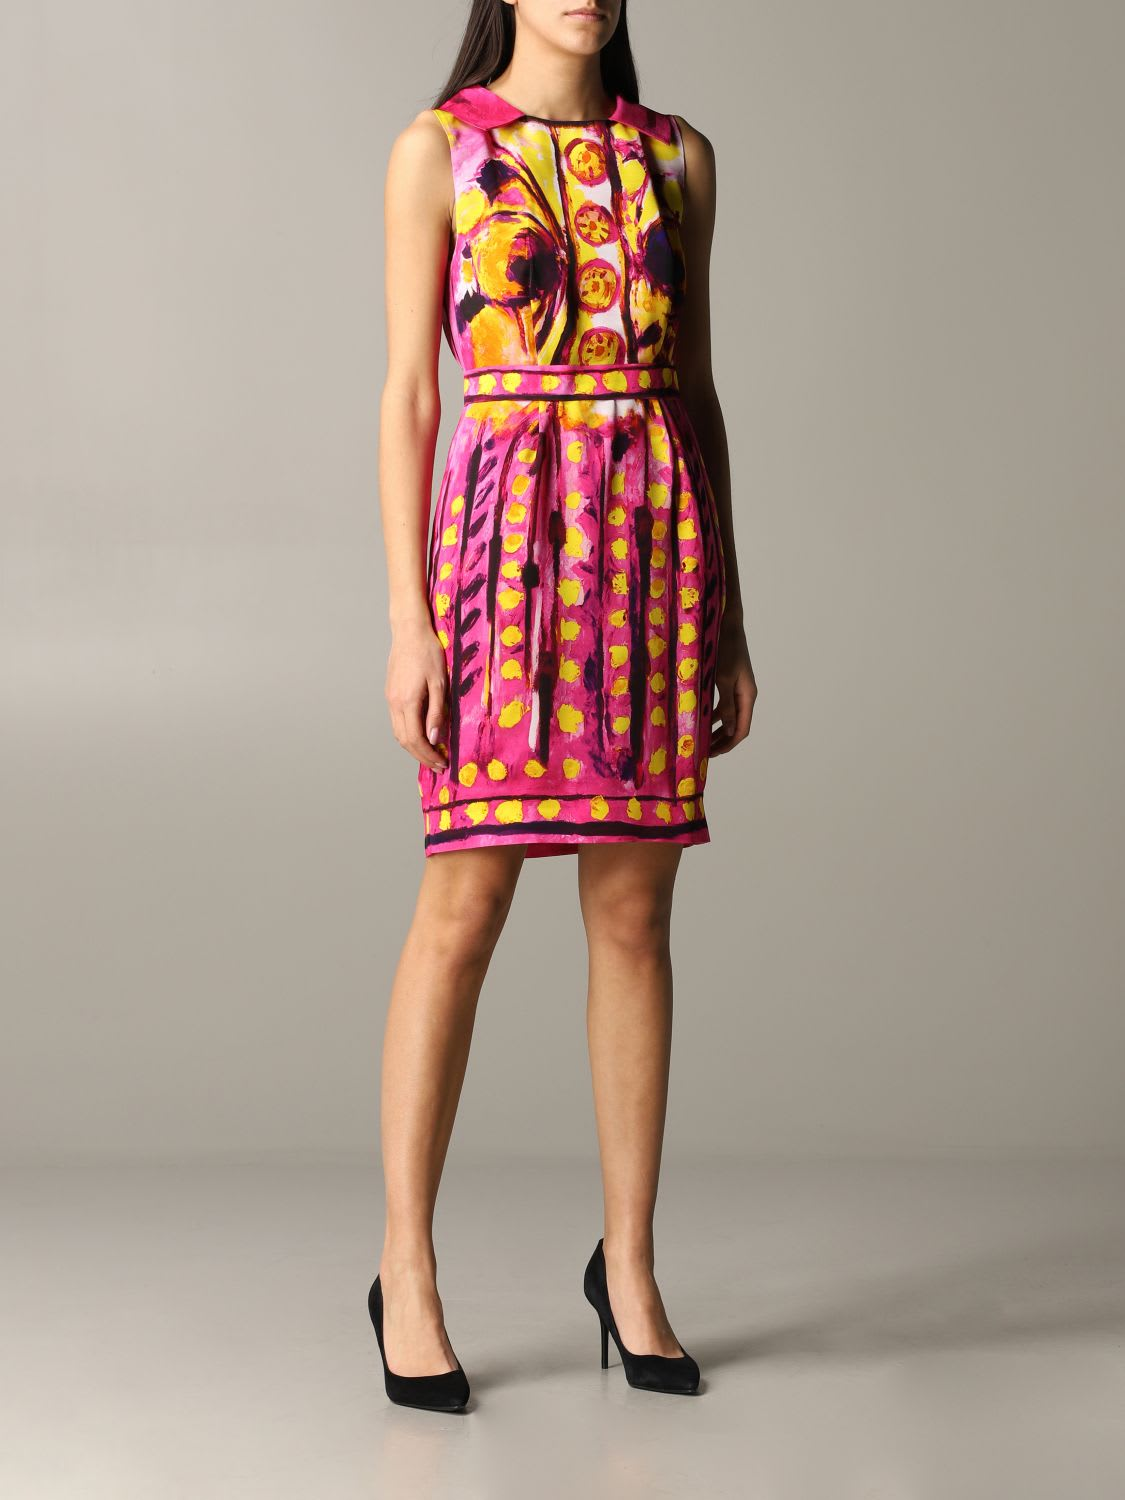 Buy Moschino Couture Dress Moschino Couture Print Dress online, shop Moschino with free shipping